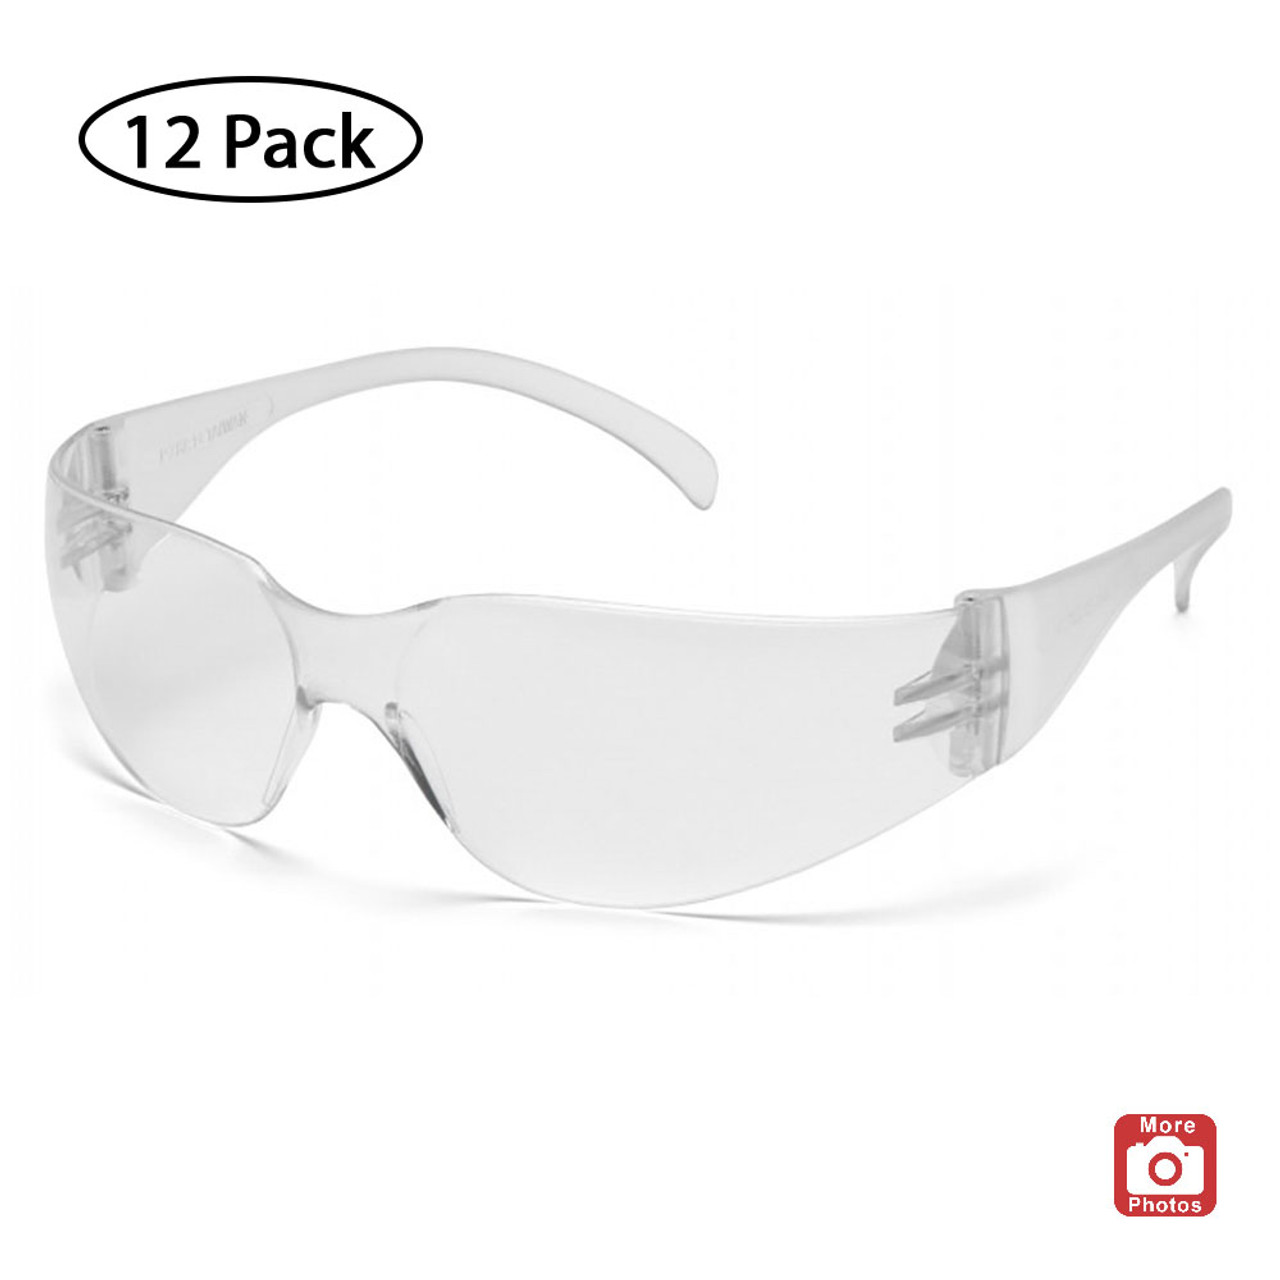 Pyramex Intruder Series Safety Glasses with Hardcoated Anti-fog Lens